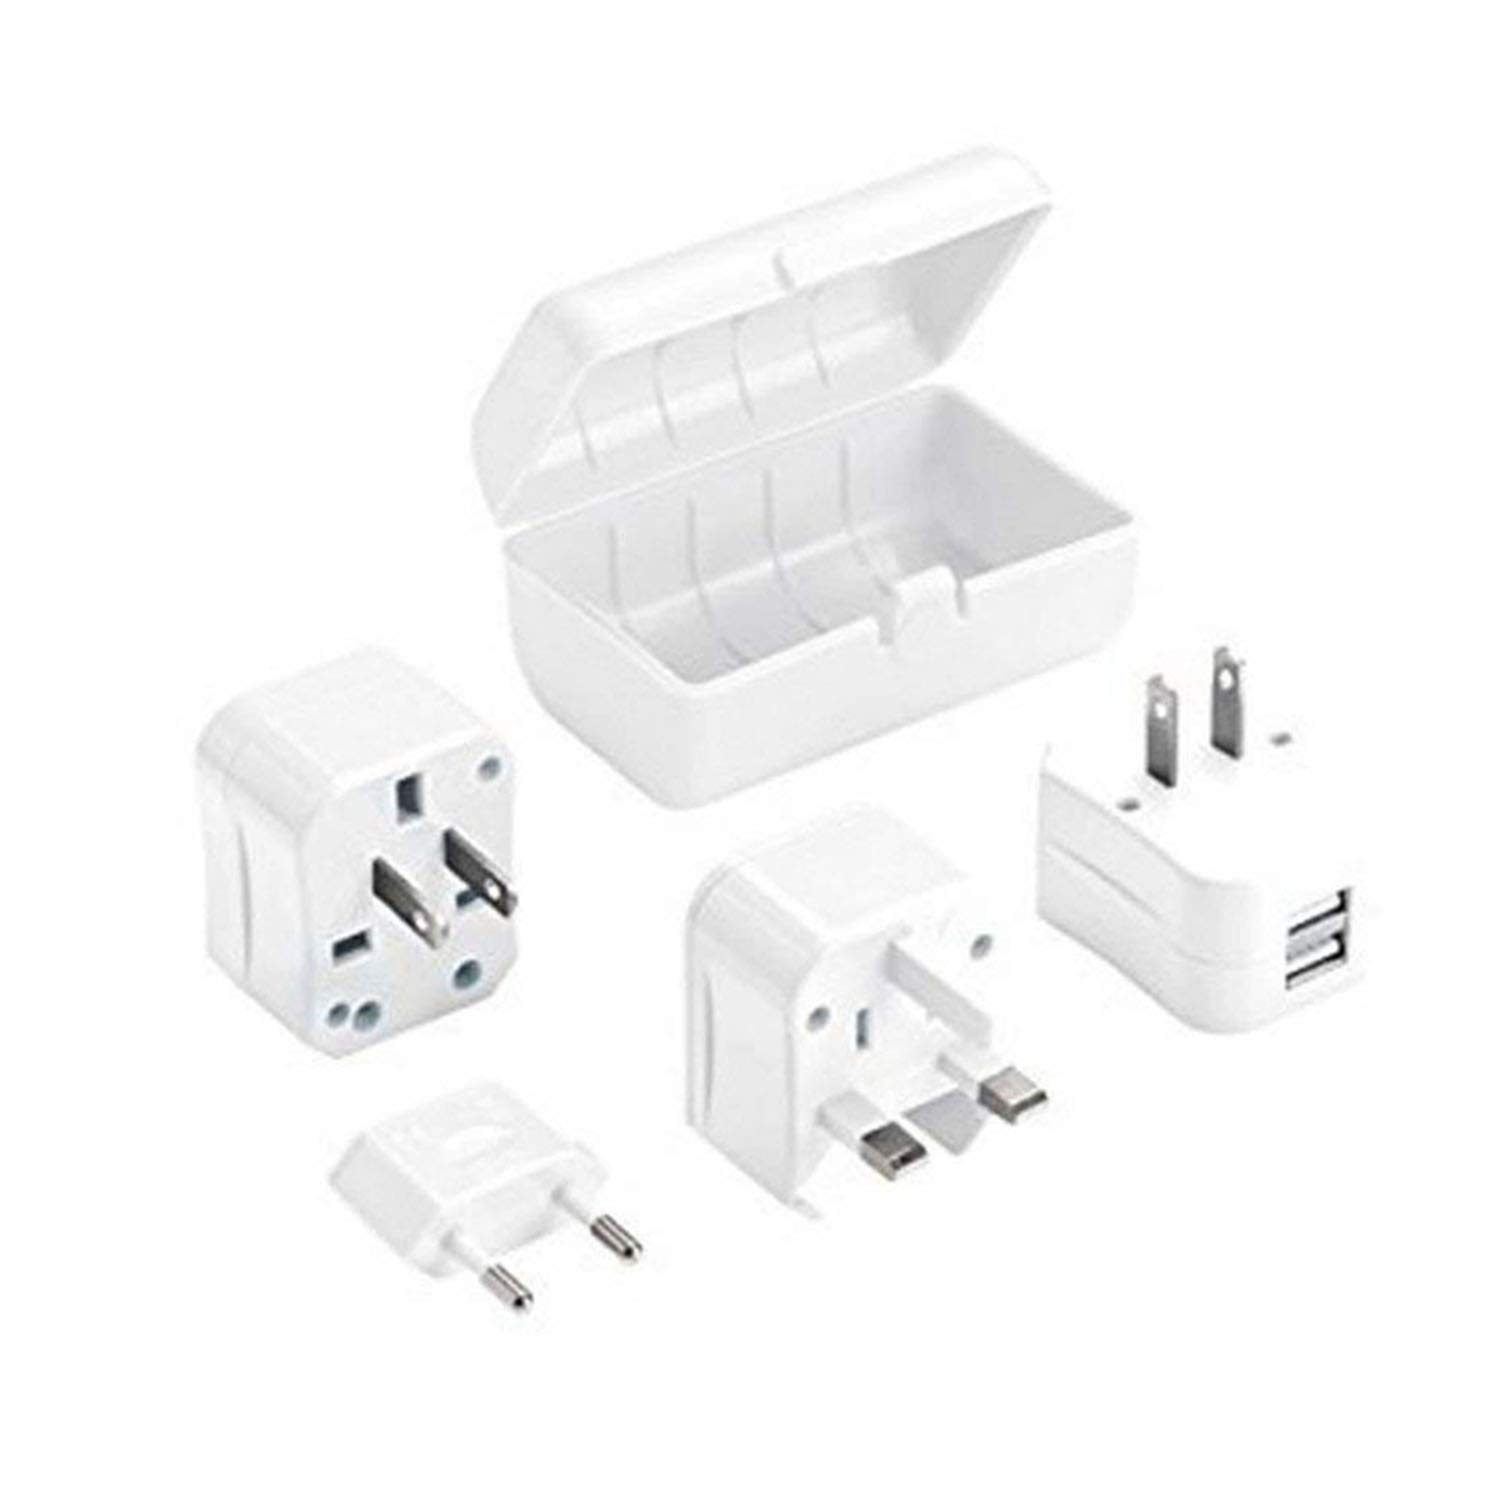 Ailuner Travel Adapter with Dual USB Plug Outlet, Worldwide Power Converter Adapter,International Universal AC Wall Outlet USB Plug Charger Socket Set for Europe UK AU. (Black)